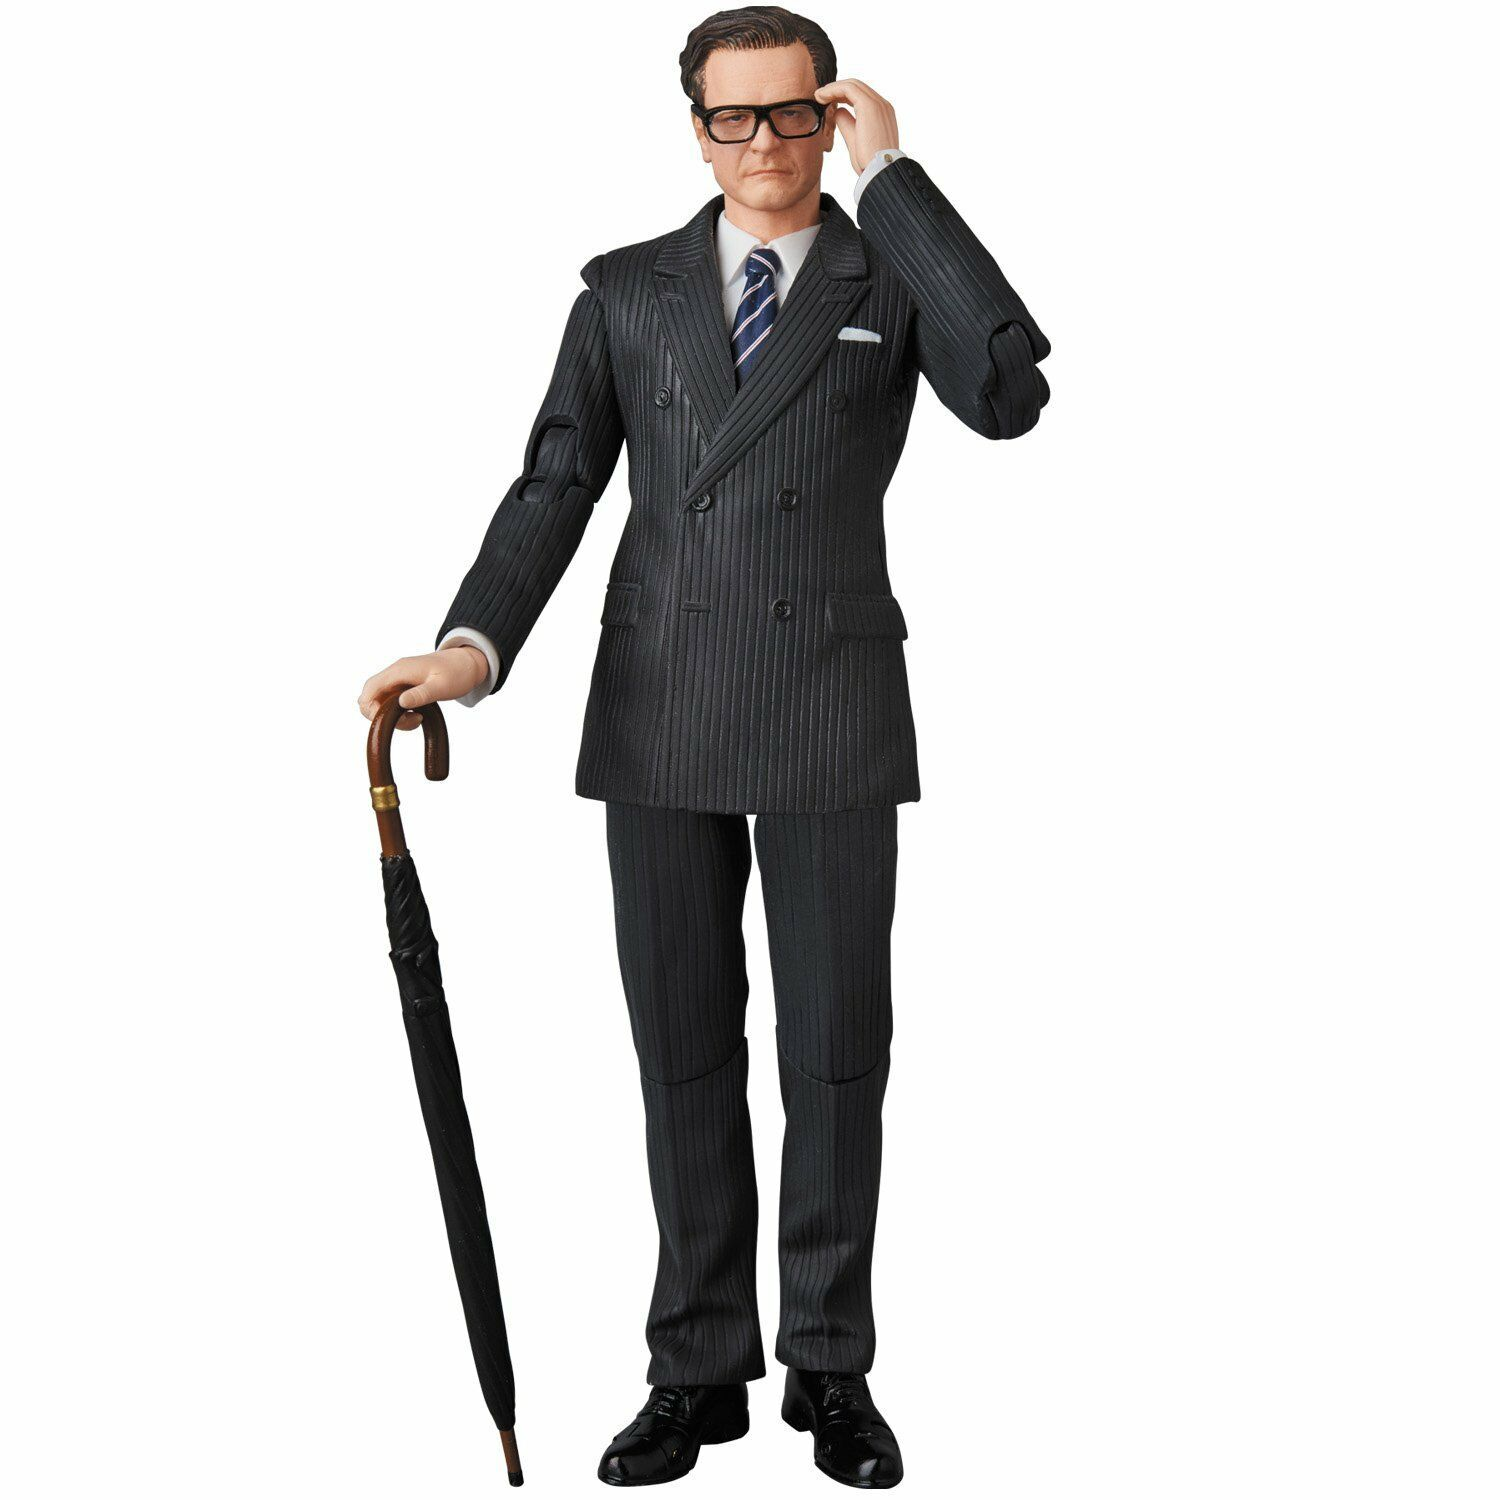 Medicom Toy MAFEX Kingsman Harry Hart Japan version